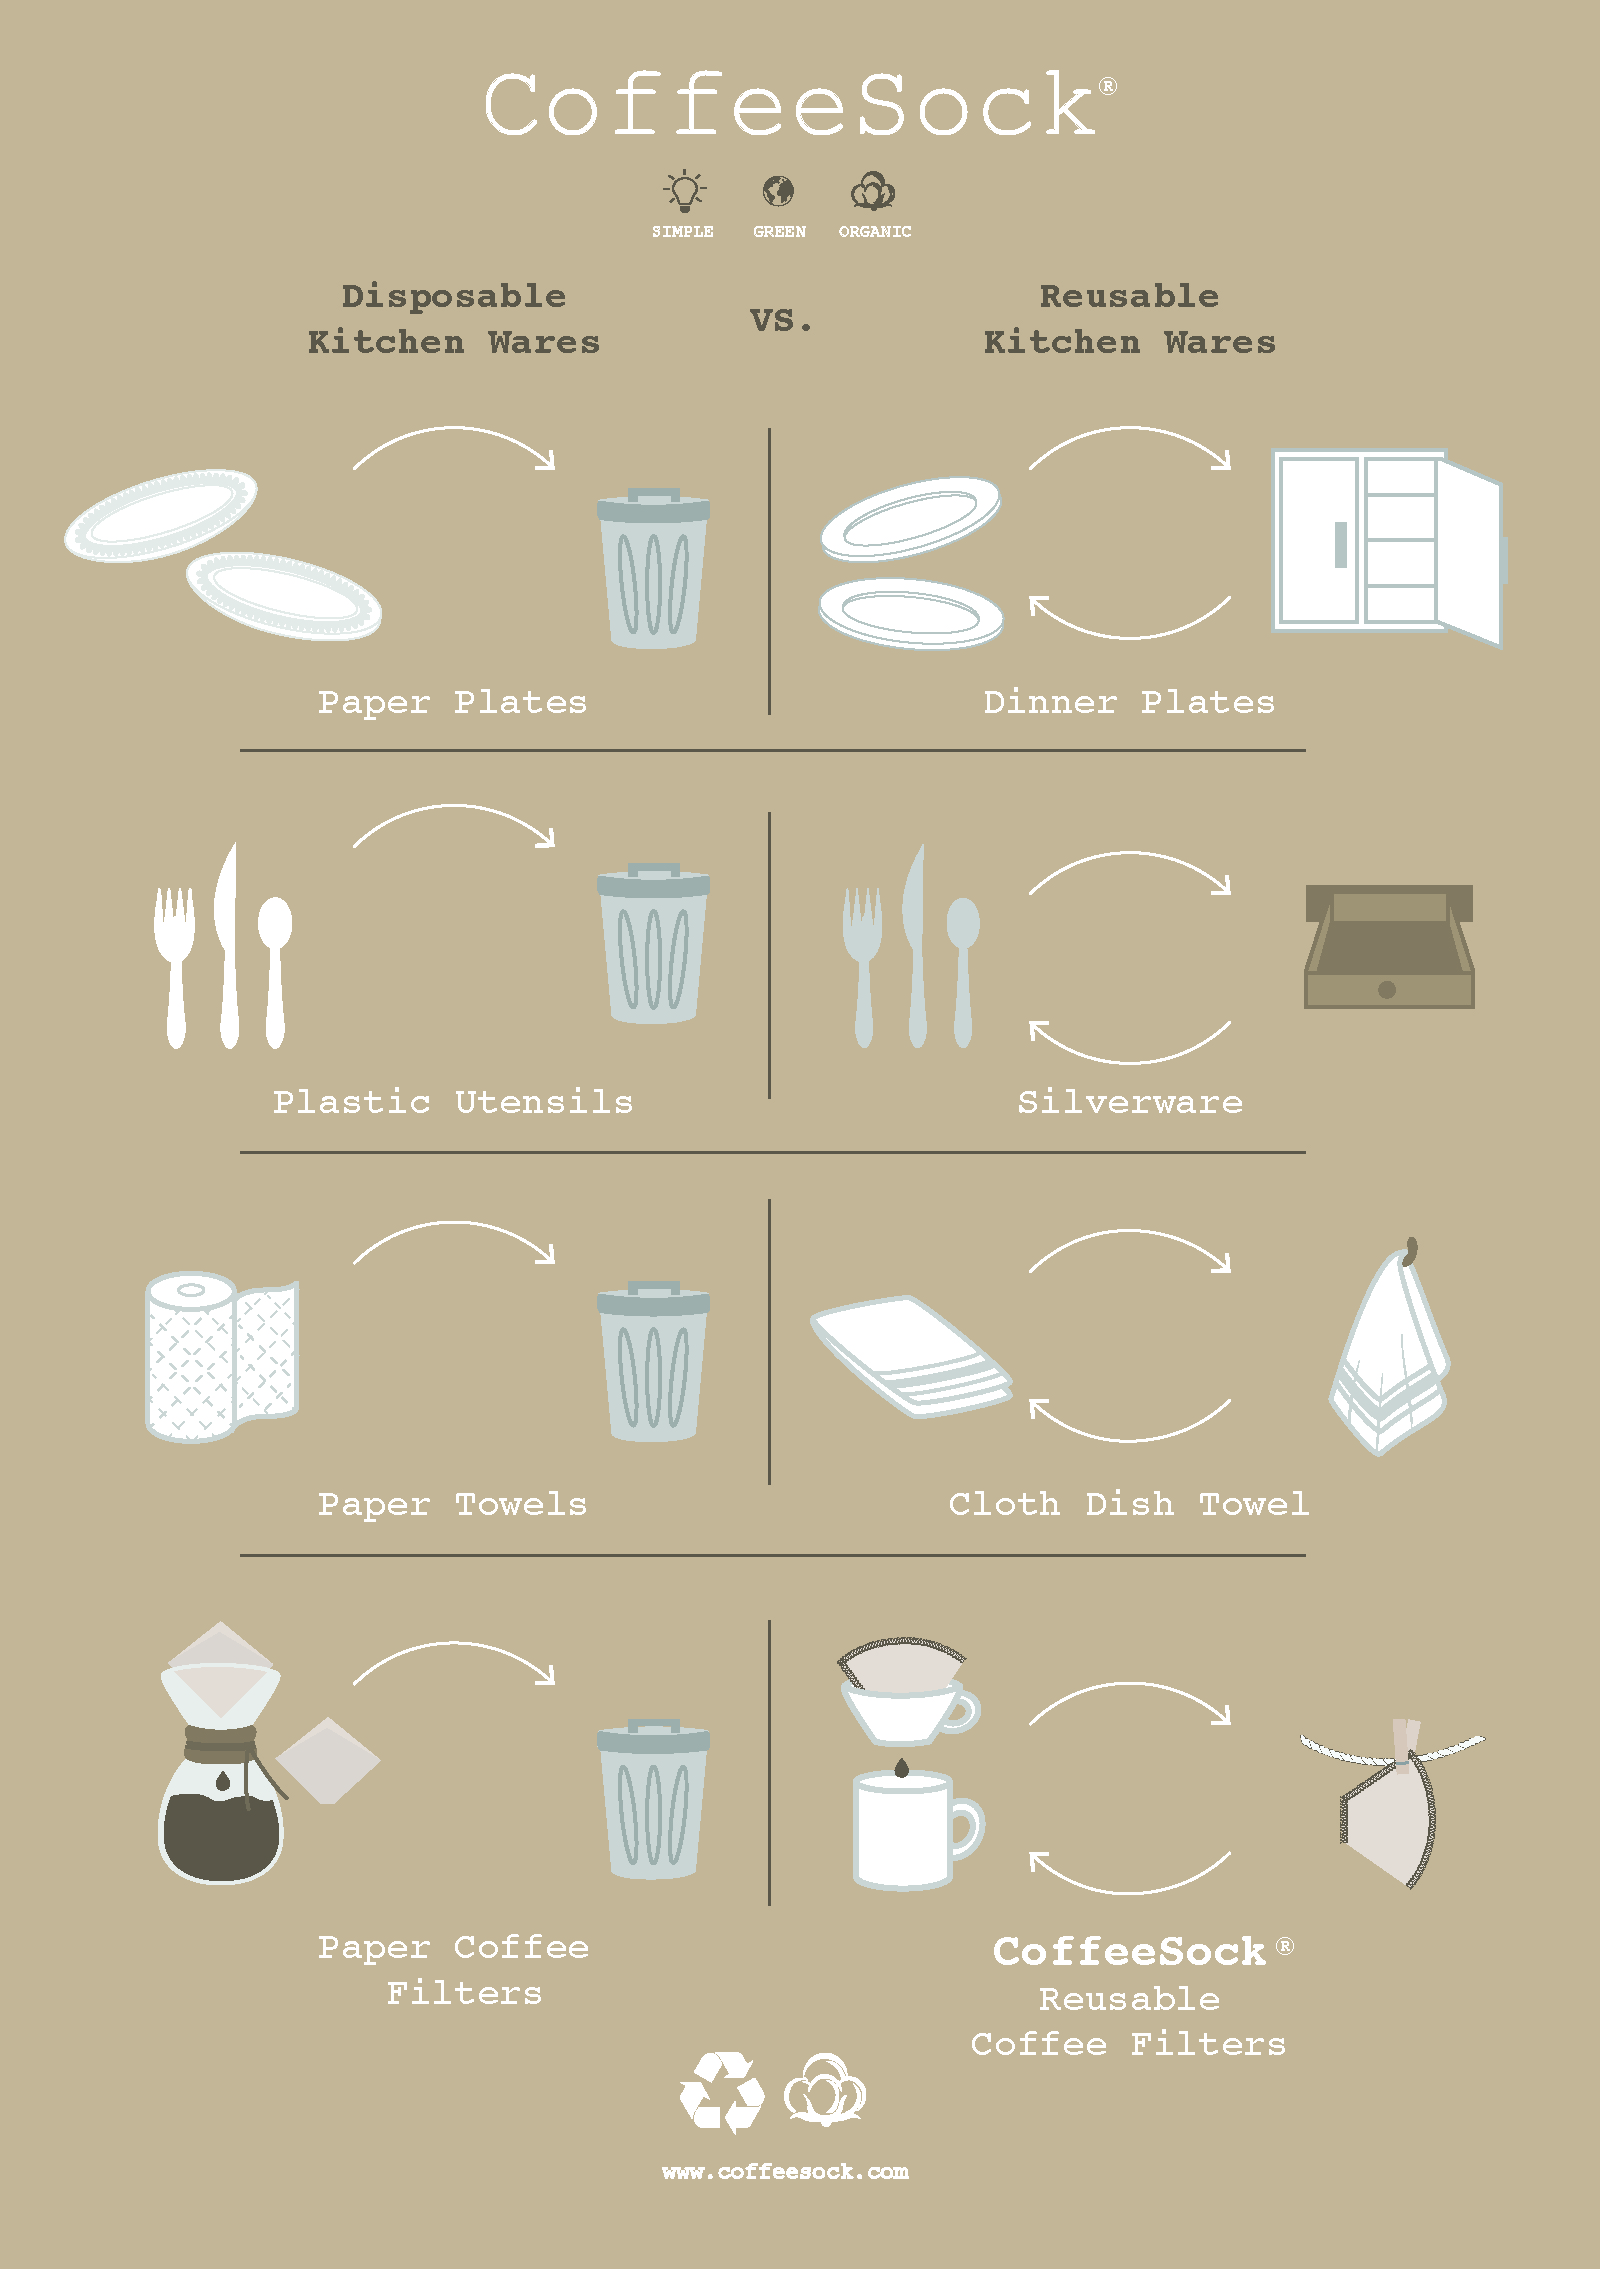 Reuse Info Graphic_Reusable vs Disposable .jpg